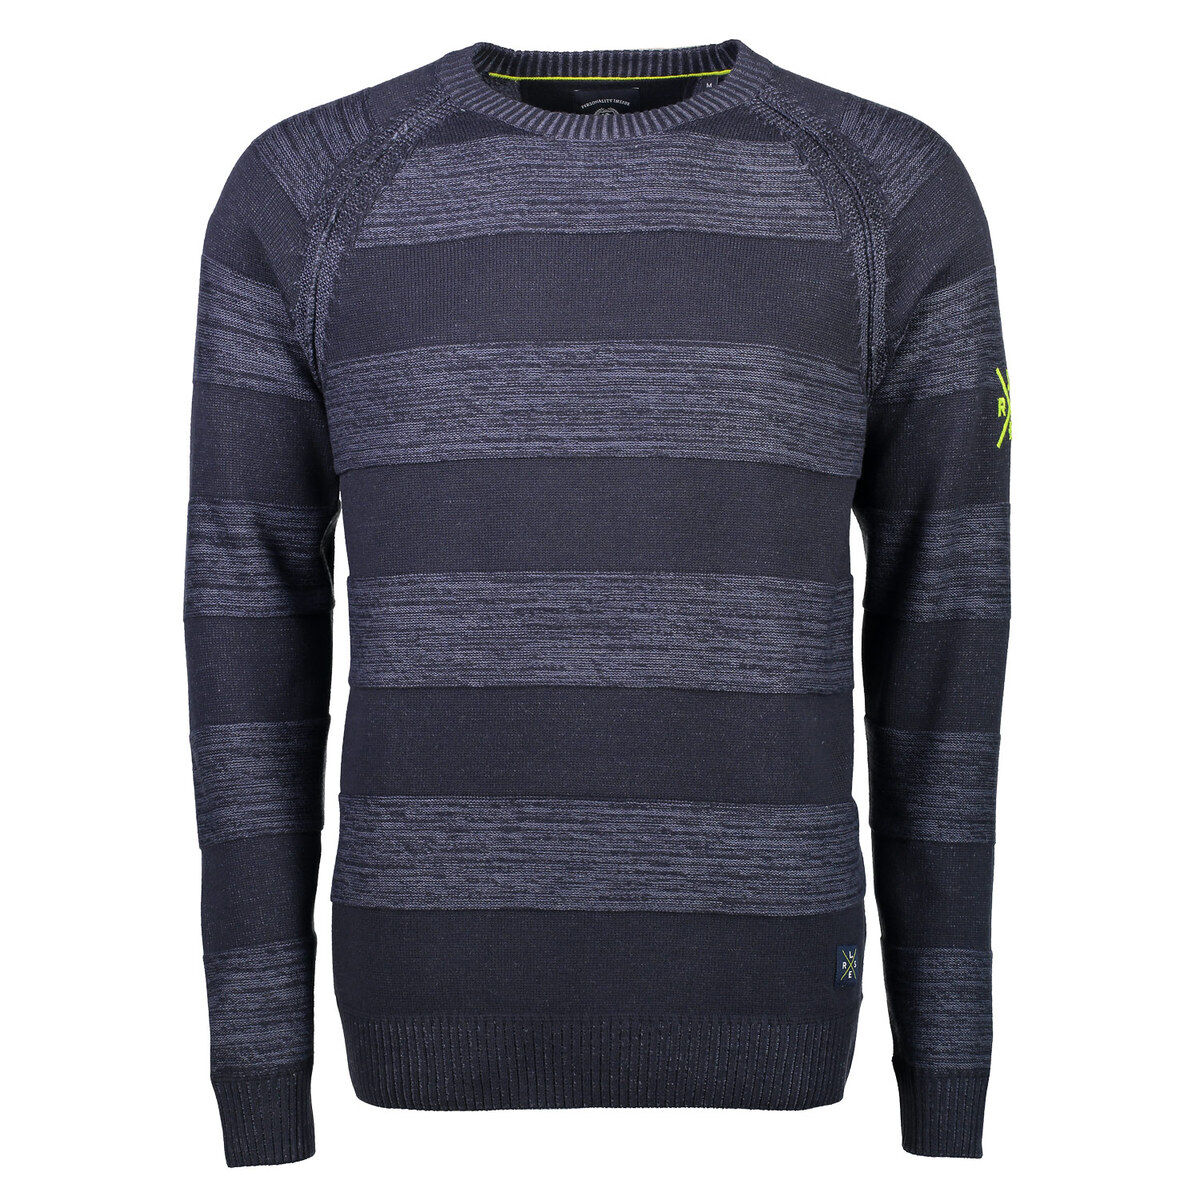 new styles 6968e 6a674 Herren Pullover, navy, M